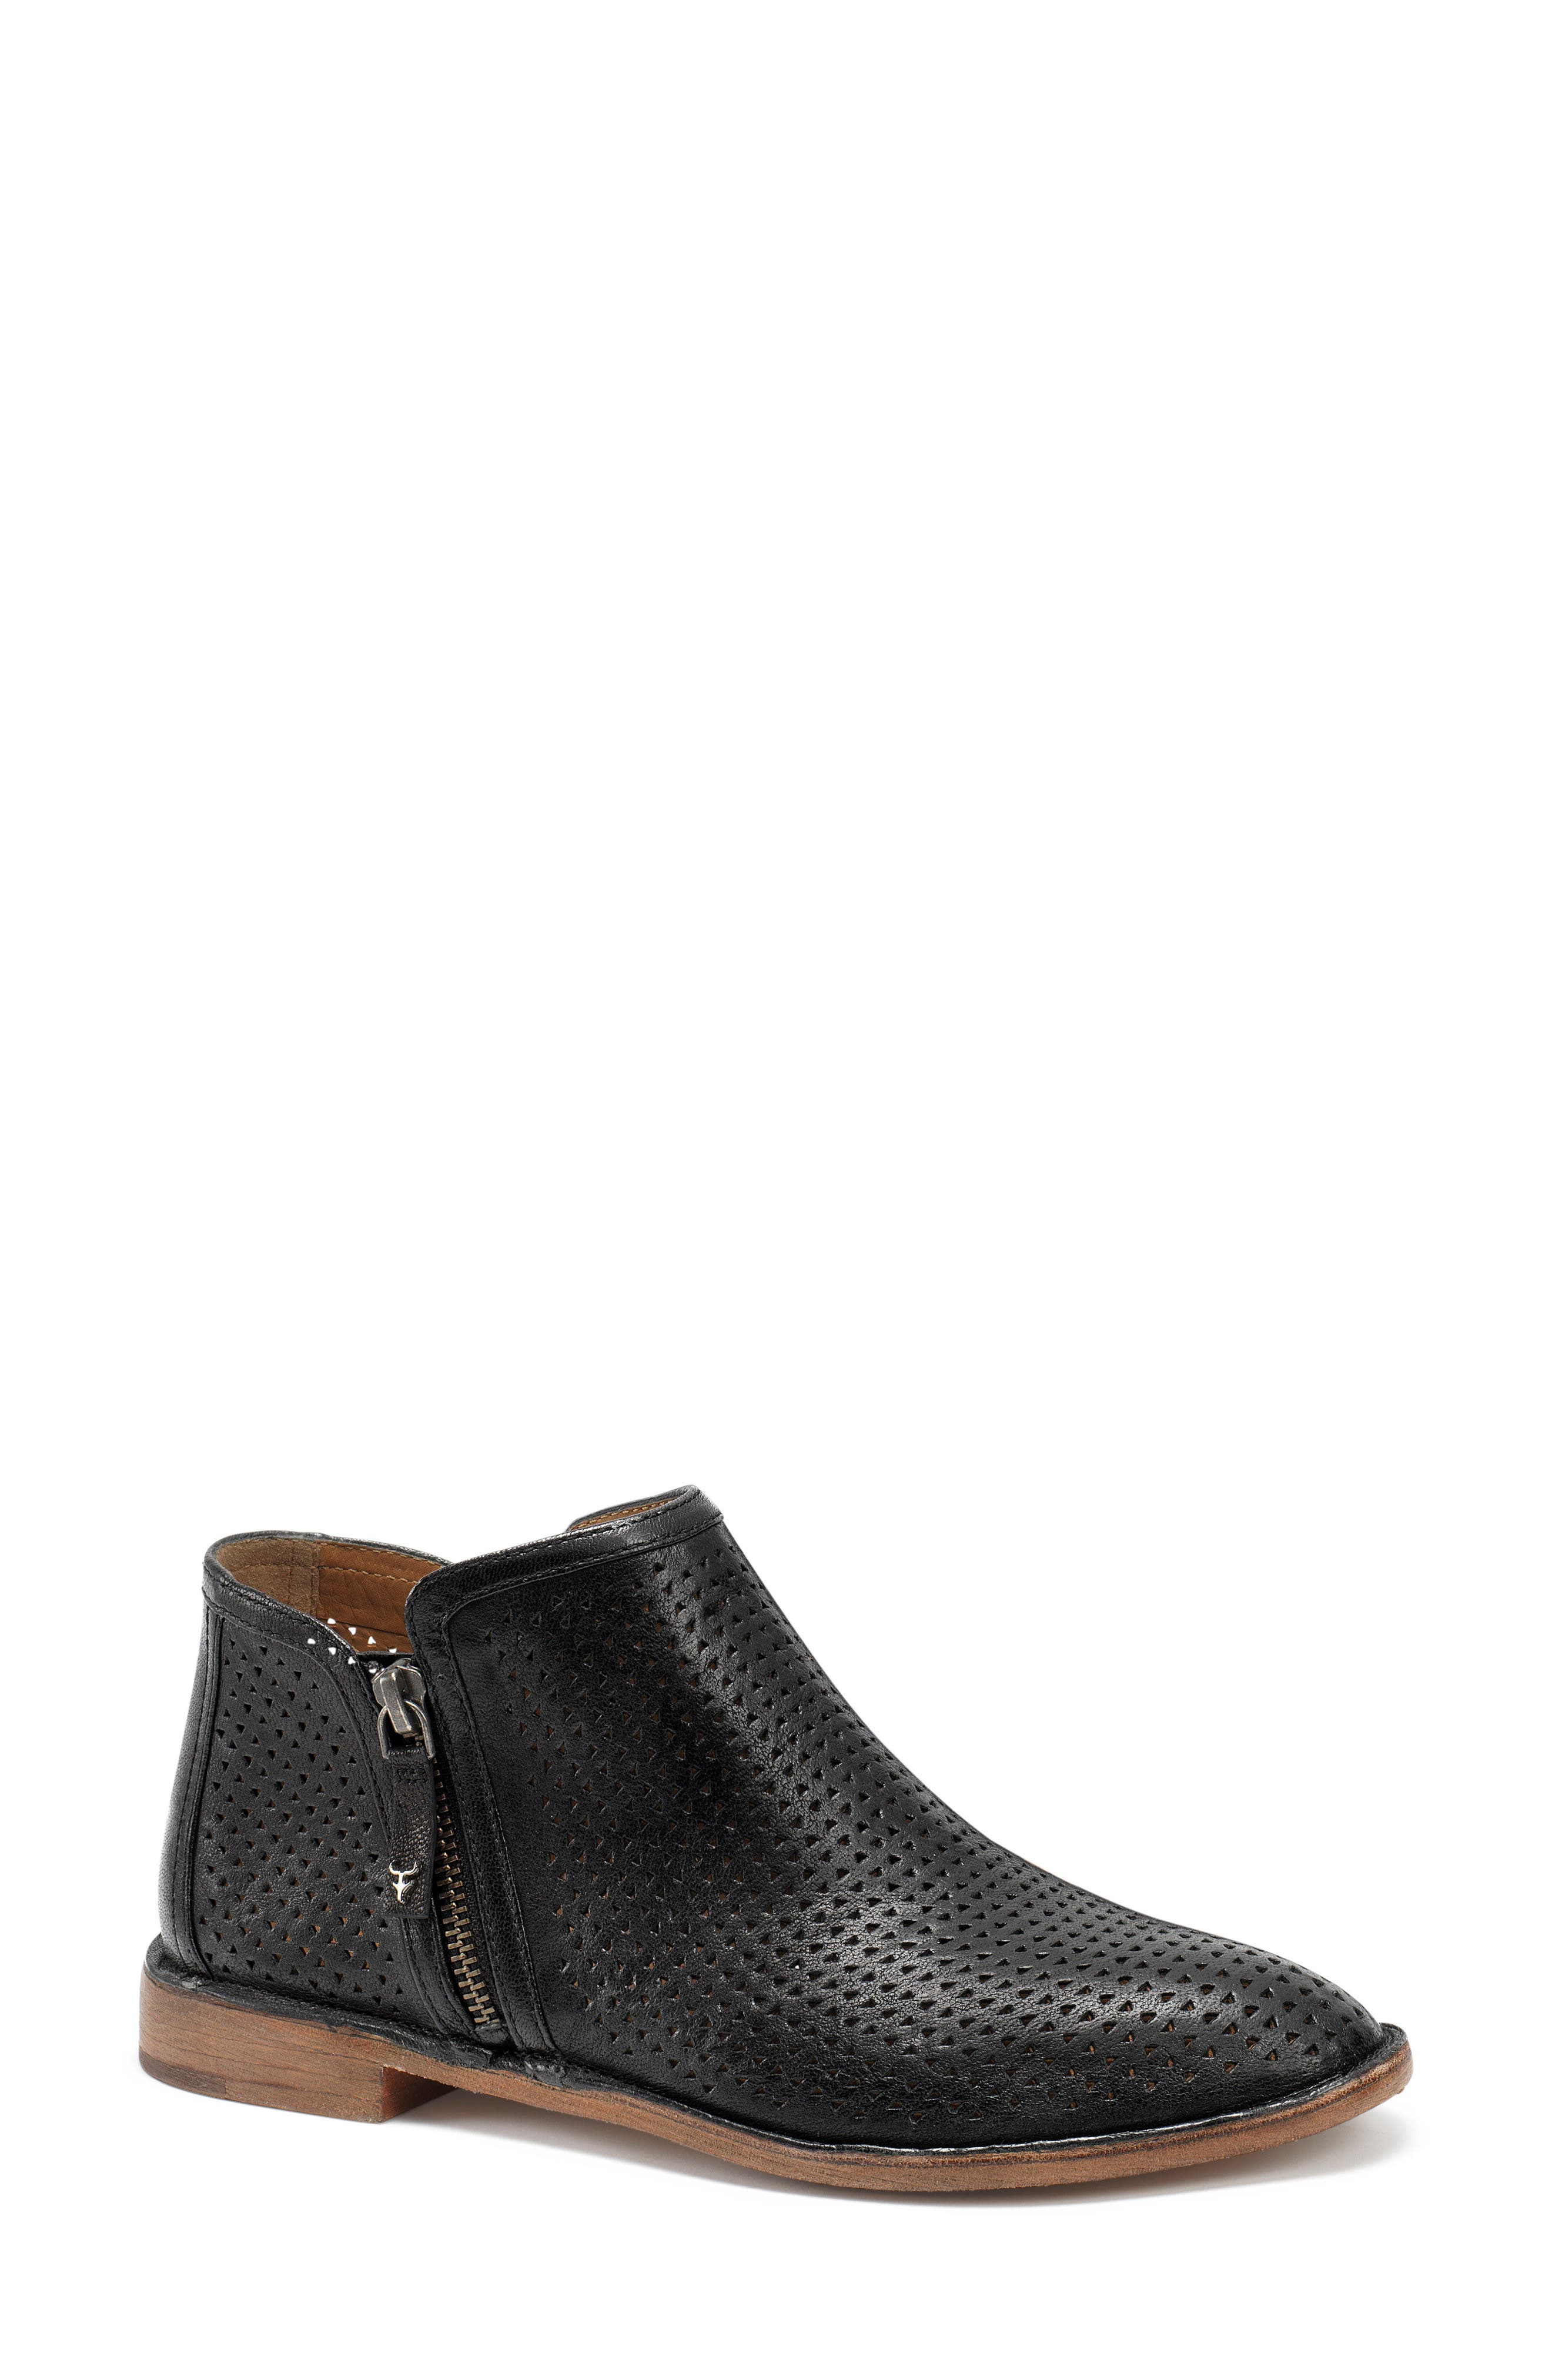 TRASK, Addison Low Perforated Bootie, Main thumbnail 1, color, 001